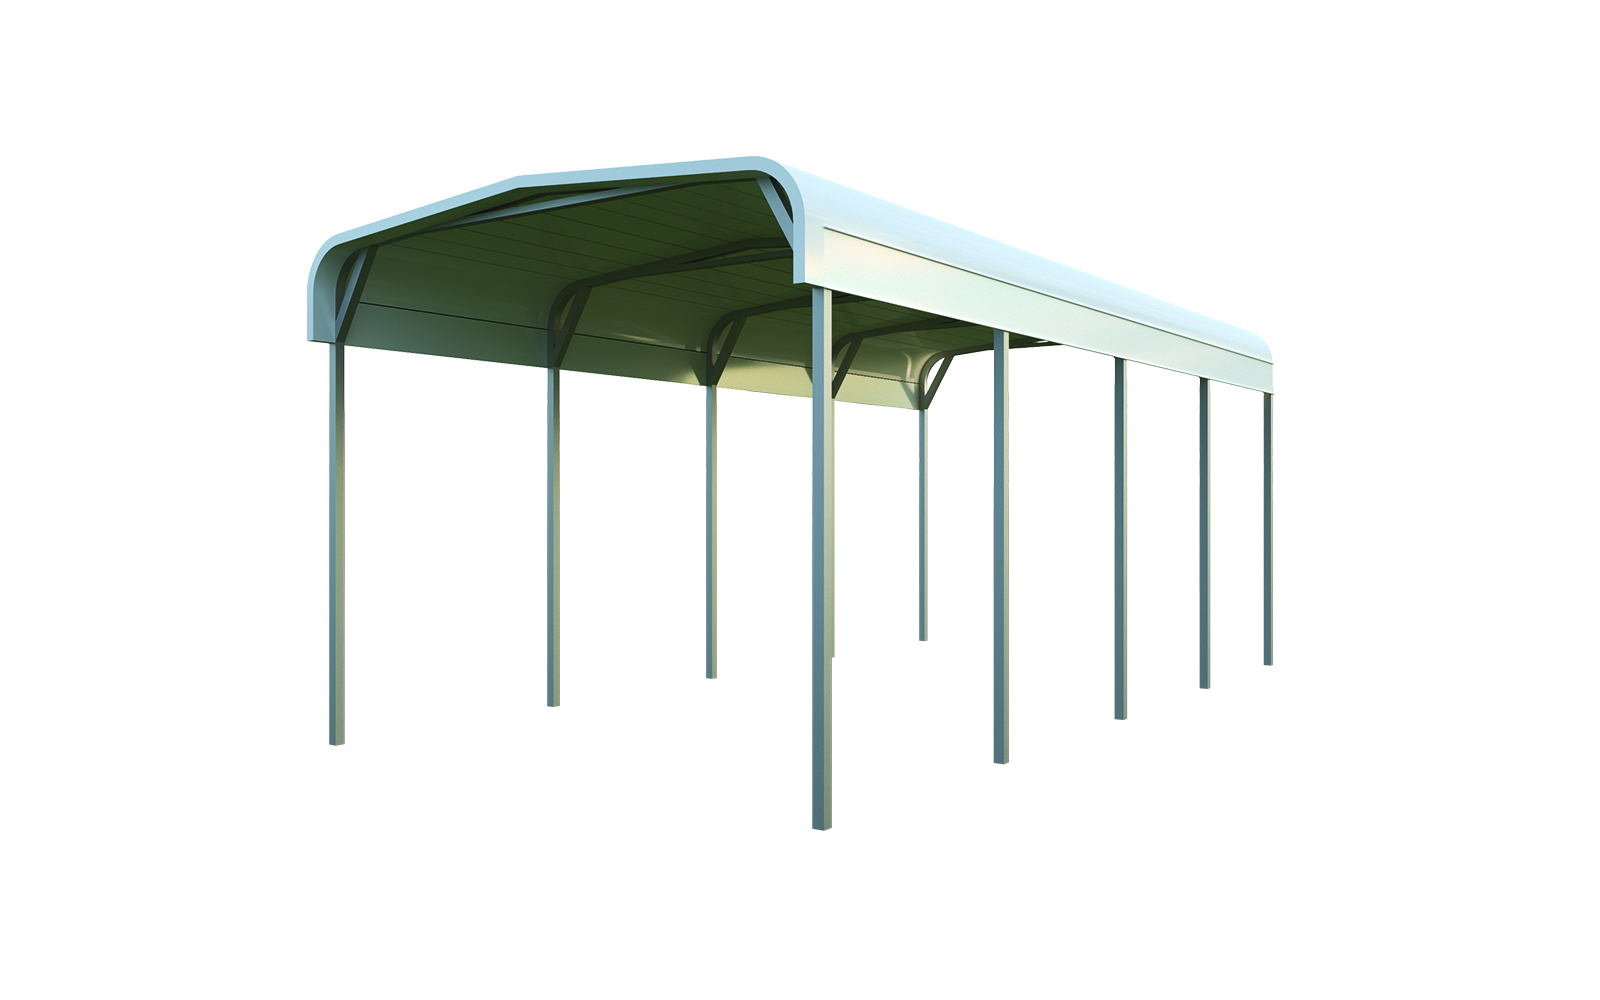 Carport Discount Price Your Building Online Metal Building Prices In 3 Steps